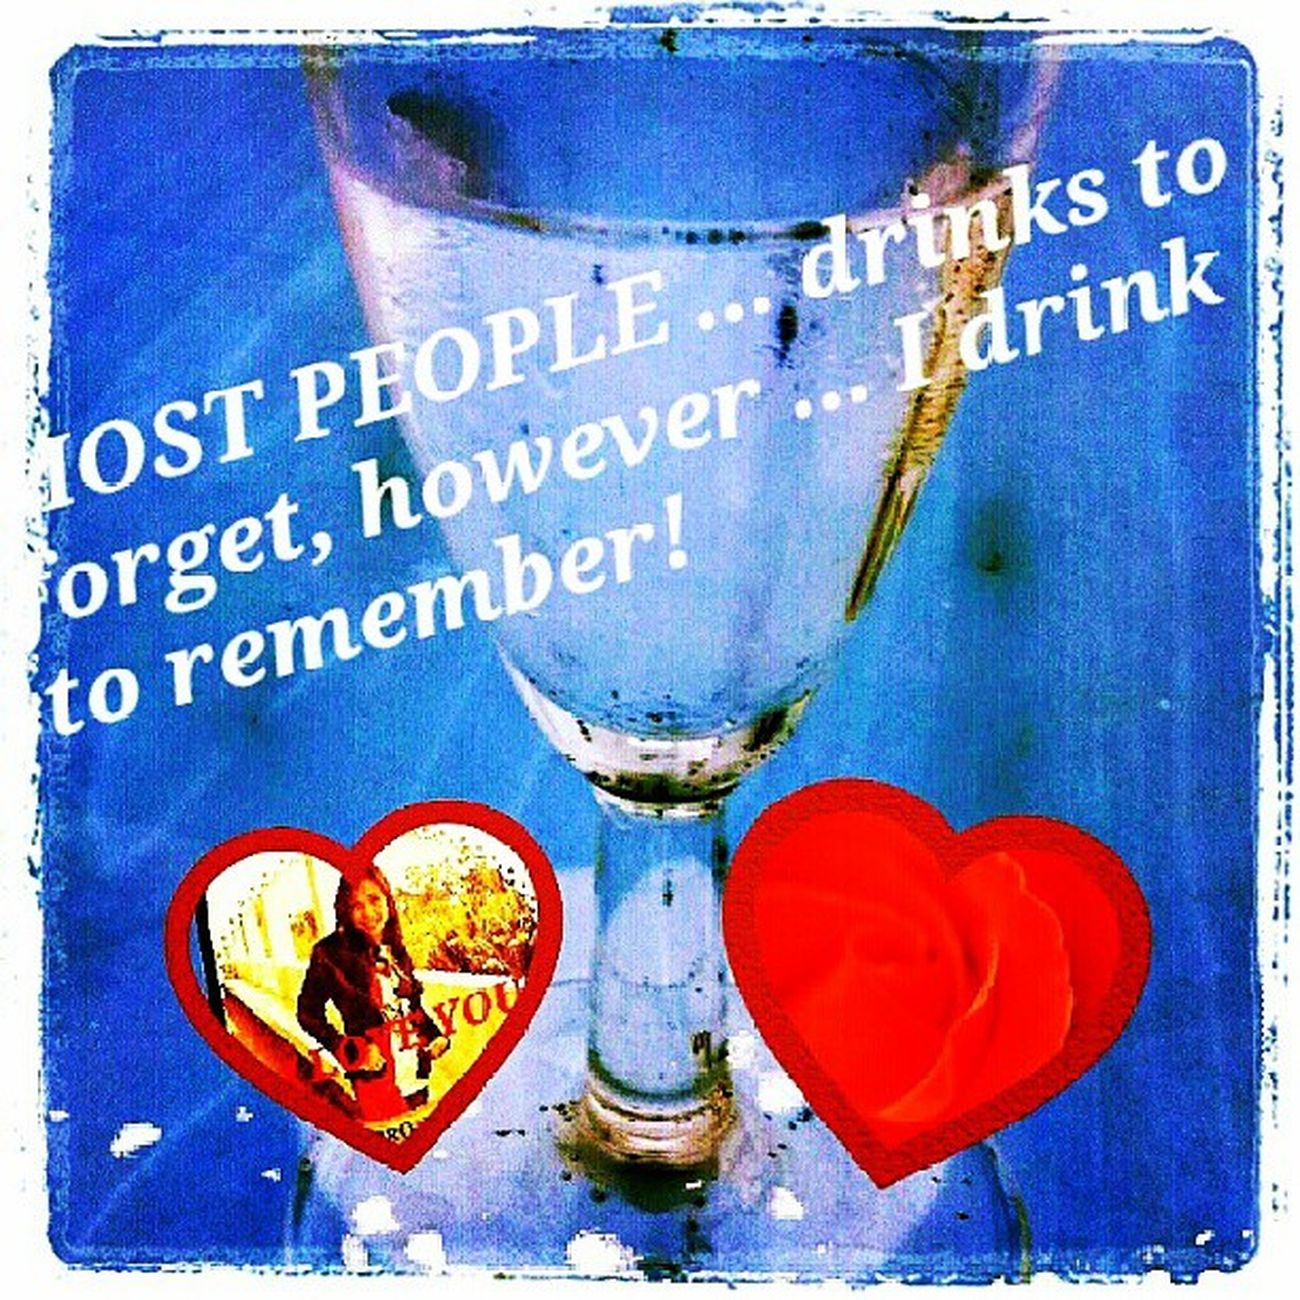 I drink .... most people drink to forget ... instead, I drink to remember ♥